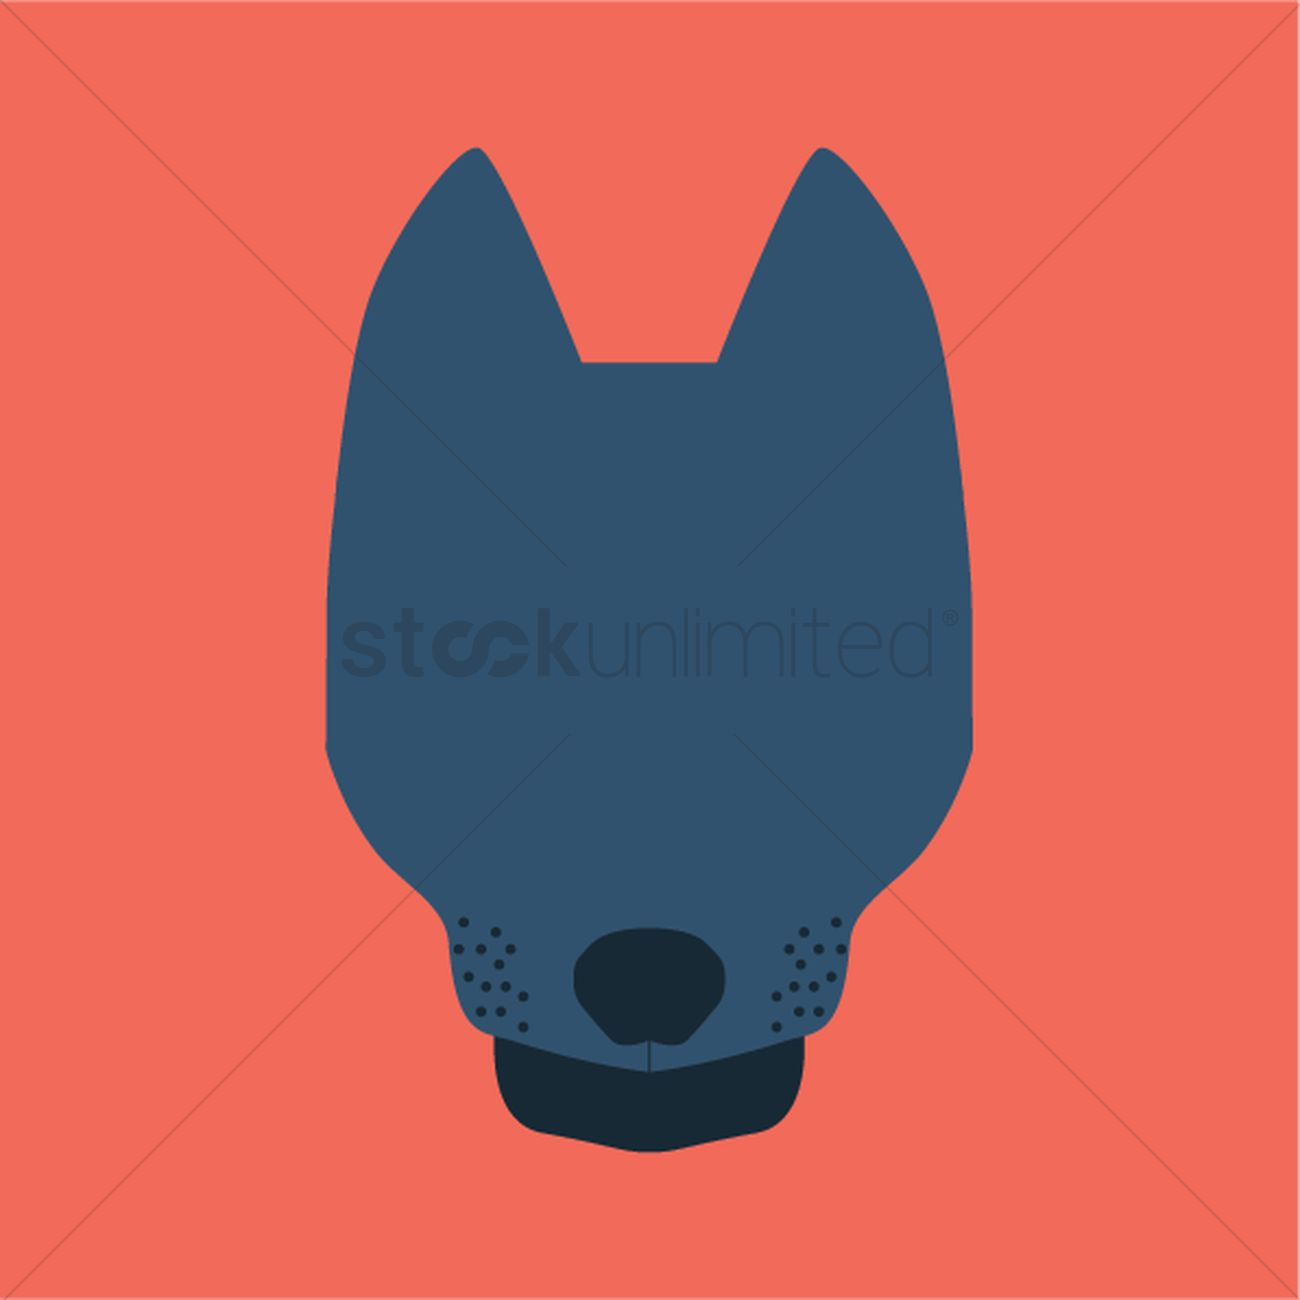 1300x1300 Silhouette Of Dog Face Vector Image